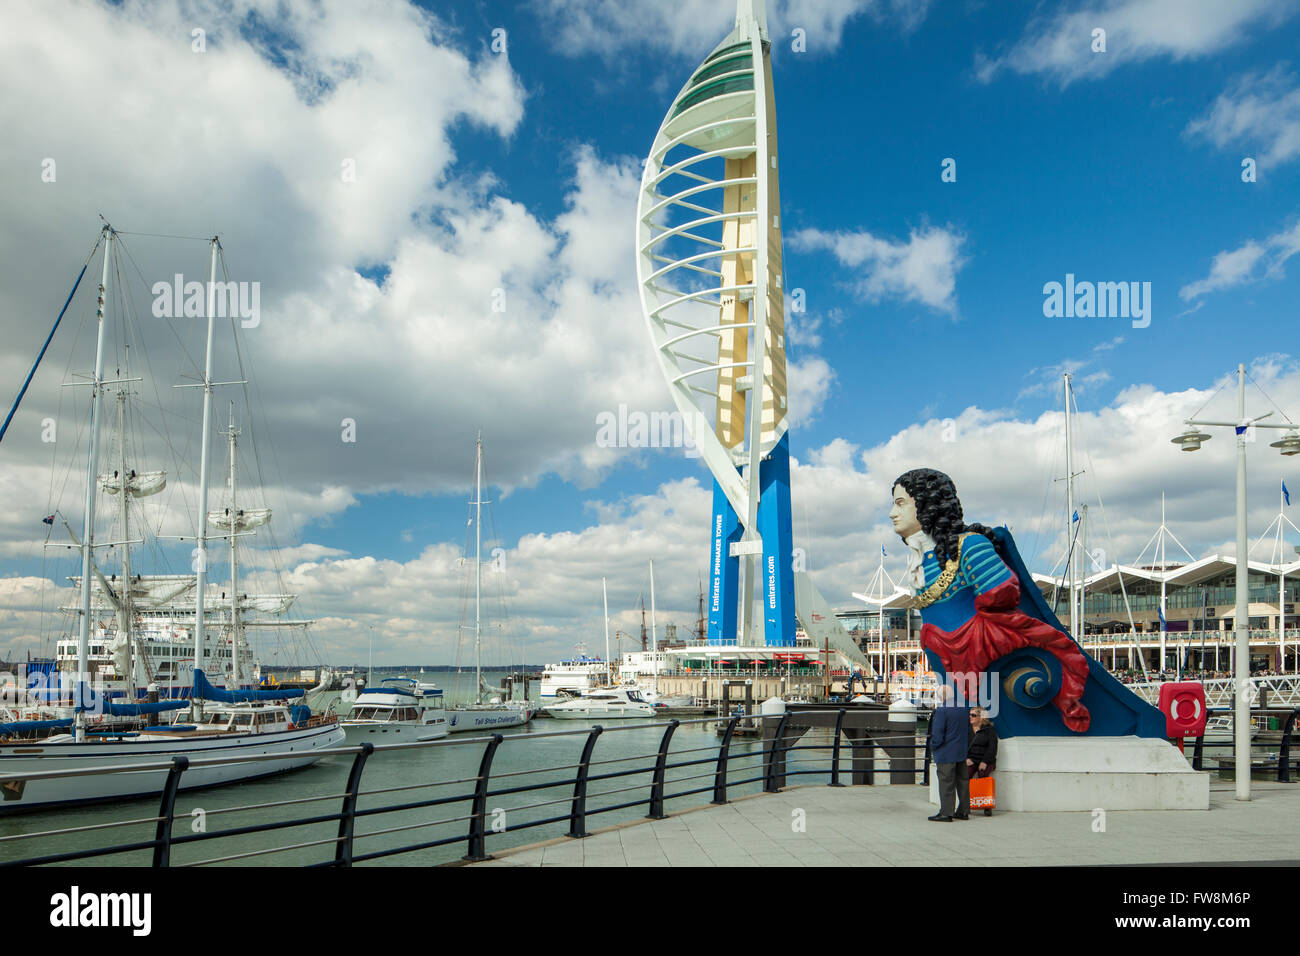 John Churchill figurehead at Gunwharf Quays in Portsmouth Harbour. Spinnaker Tower in the distance. - Stock Image